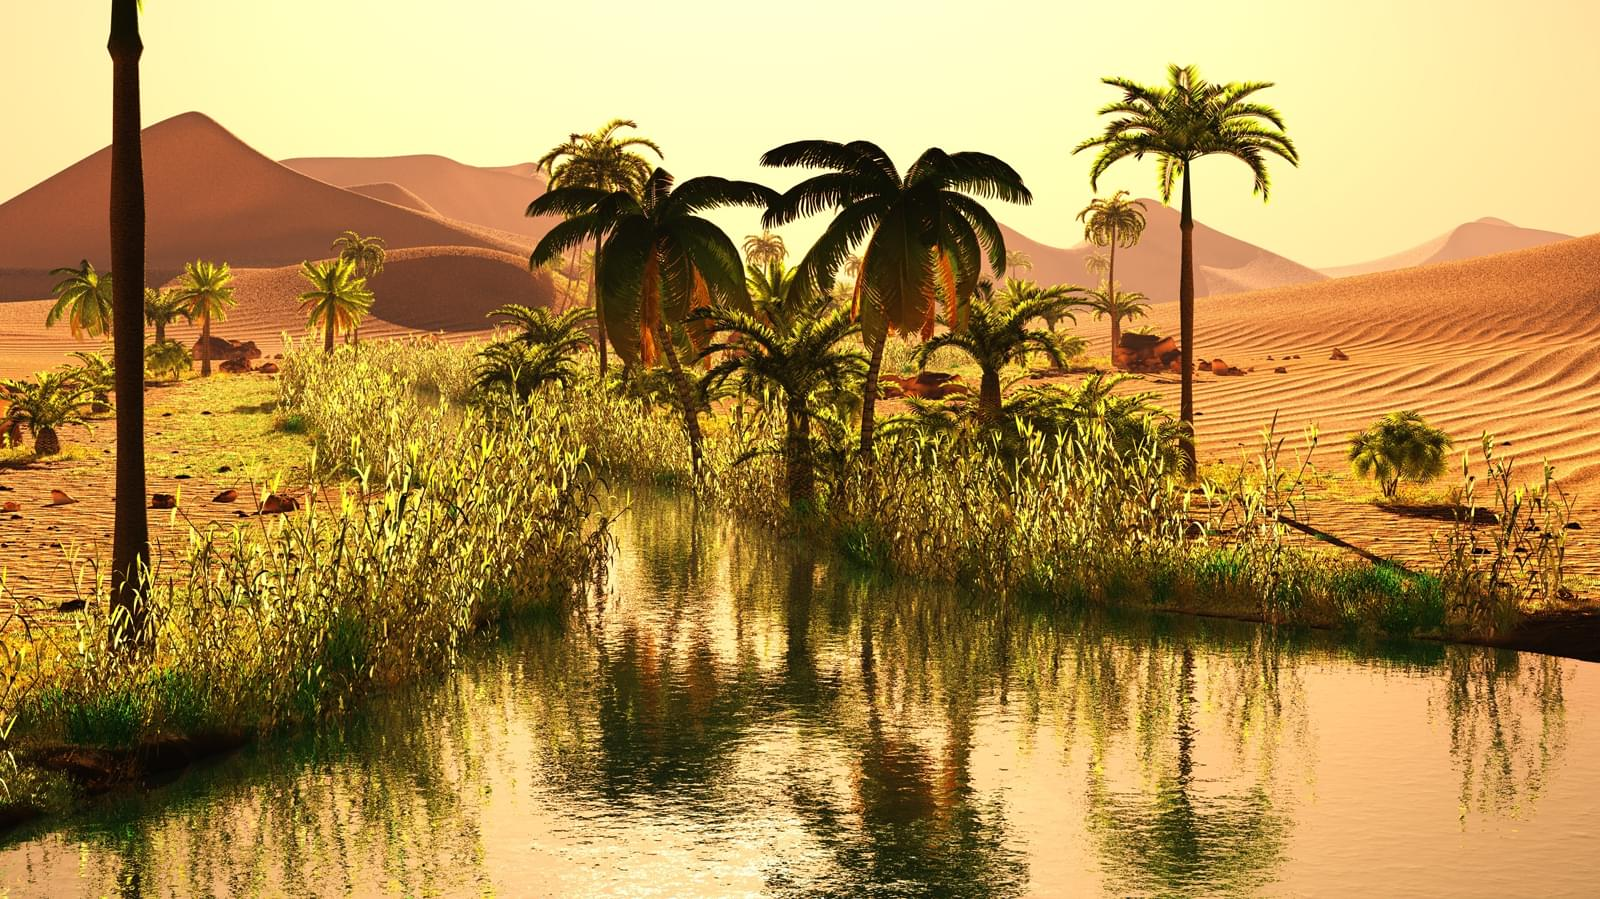 picture of an oasis